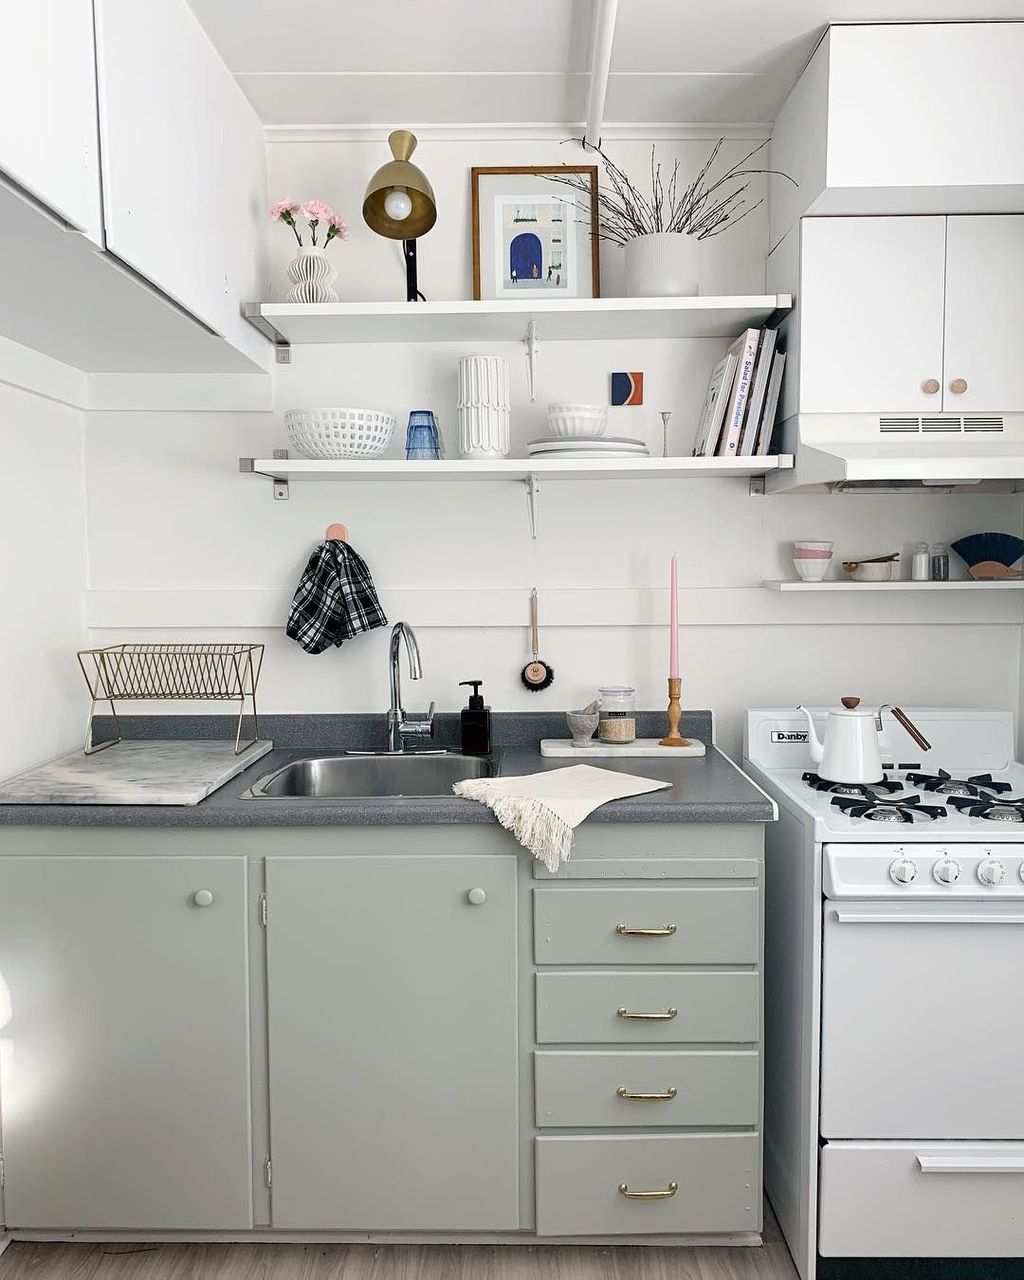 30 Cozy Apartment Kitchen Rental Decor Ideas On A Budget With